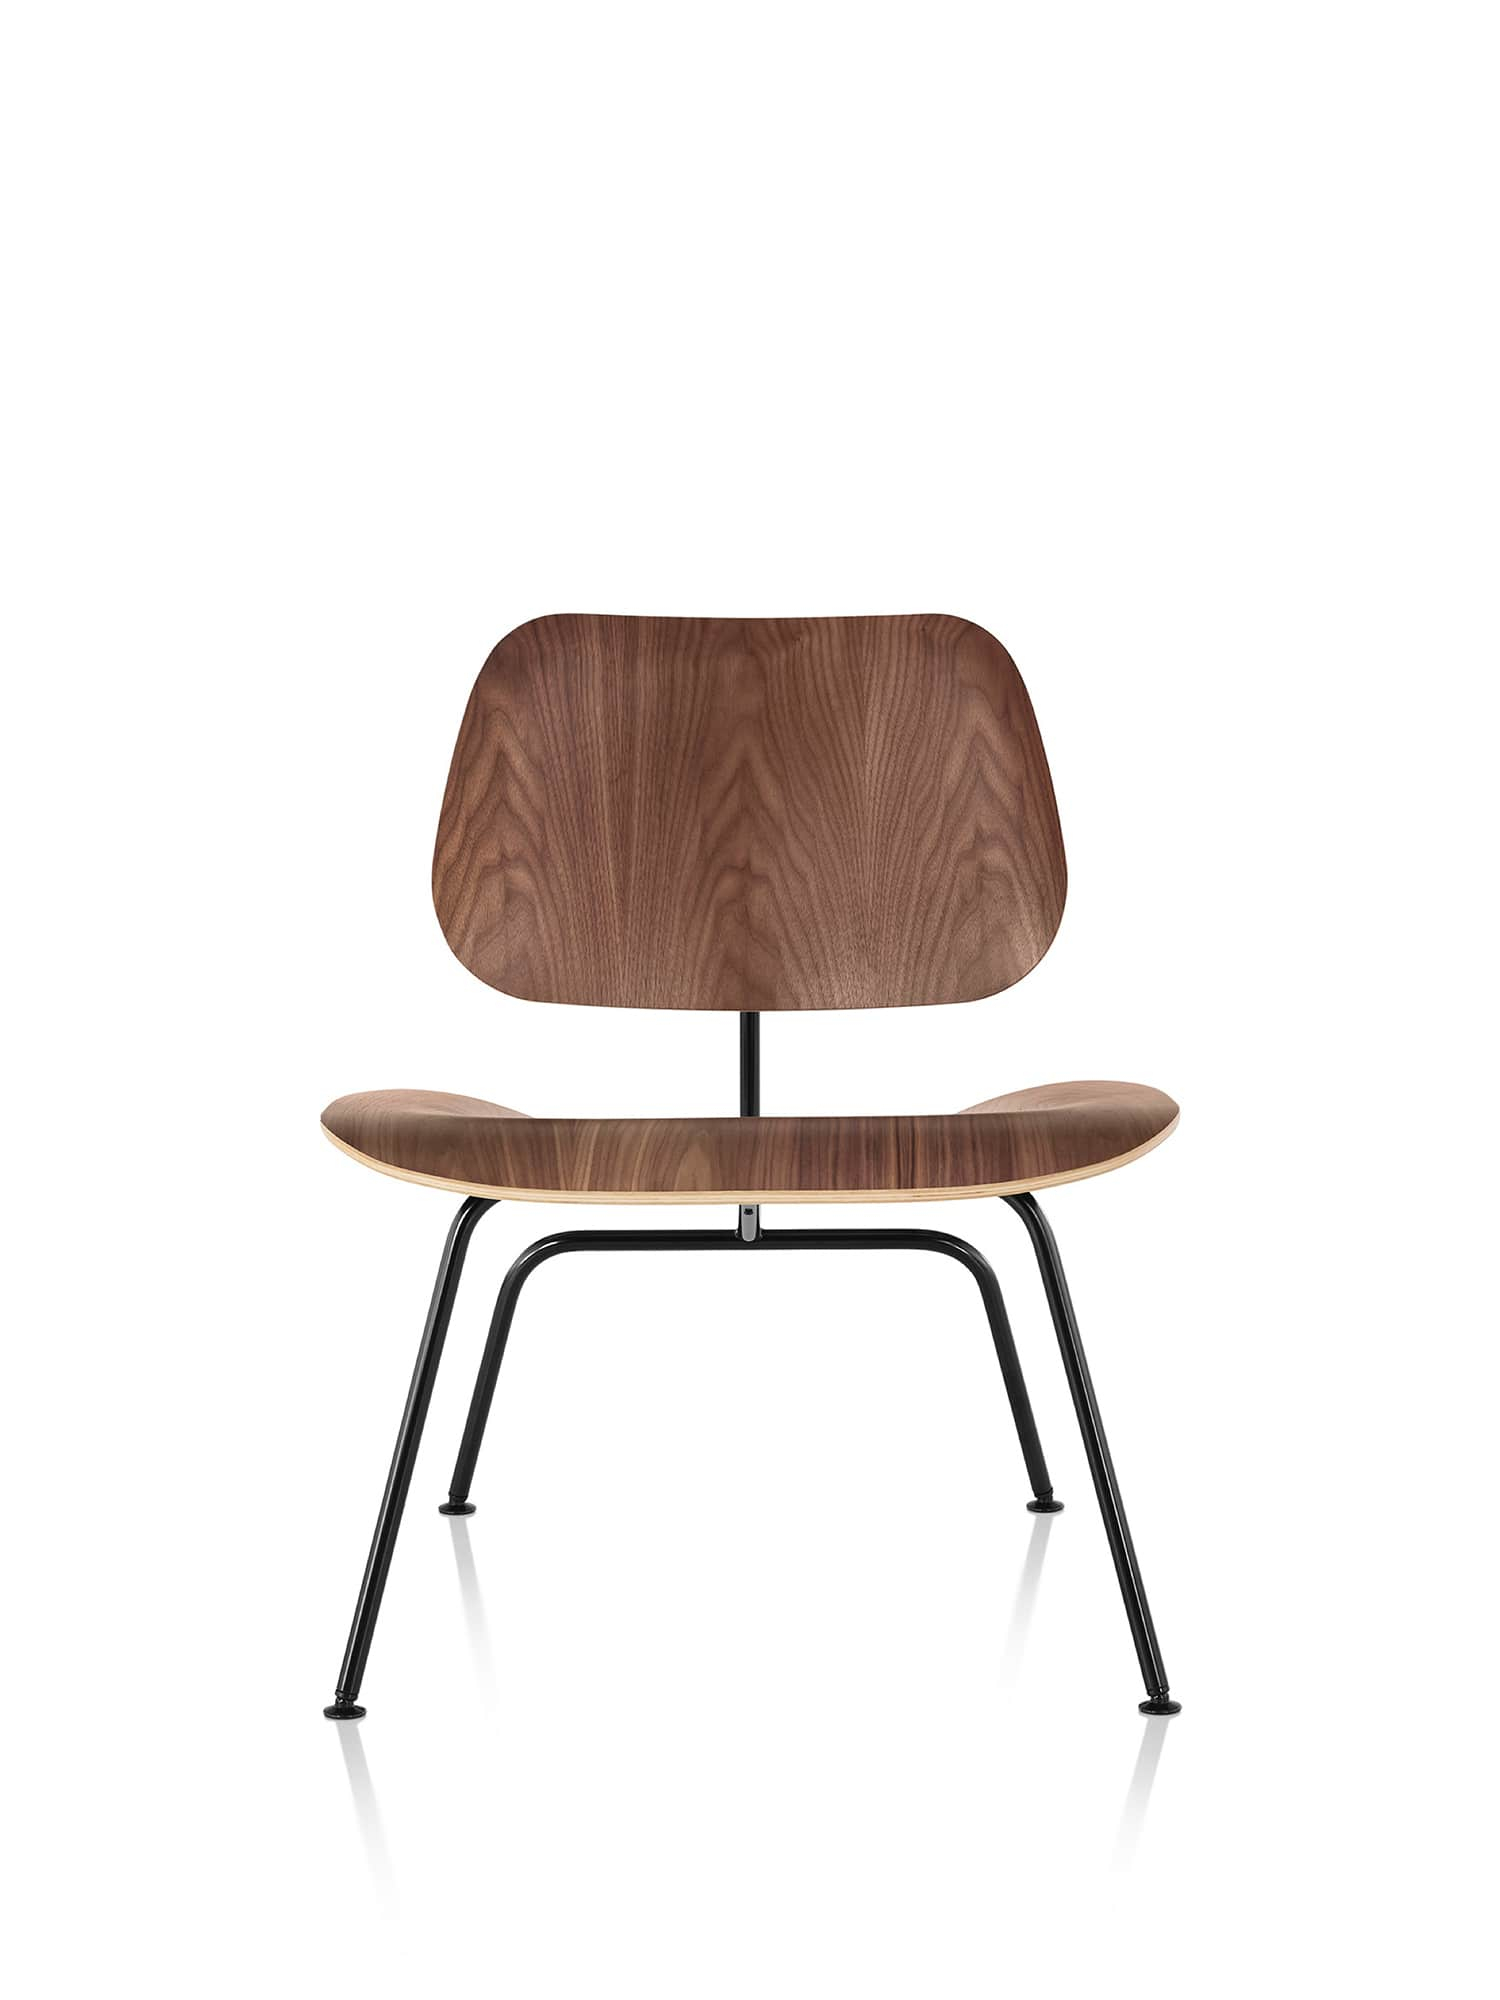 Eames Molded Plywood Lounge Chair With Metal Base – Herman Intended For Lounge Chairs With Metal Leg (View 15 of 15)